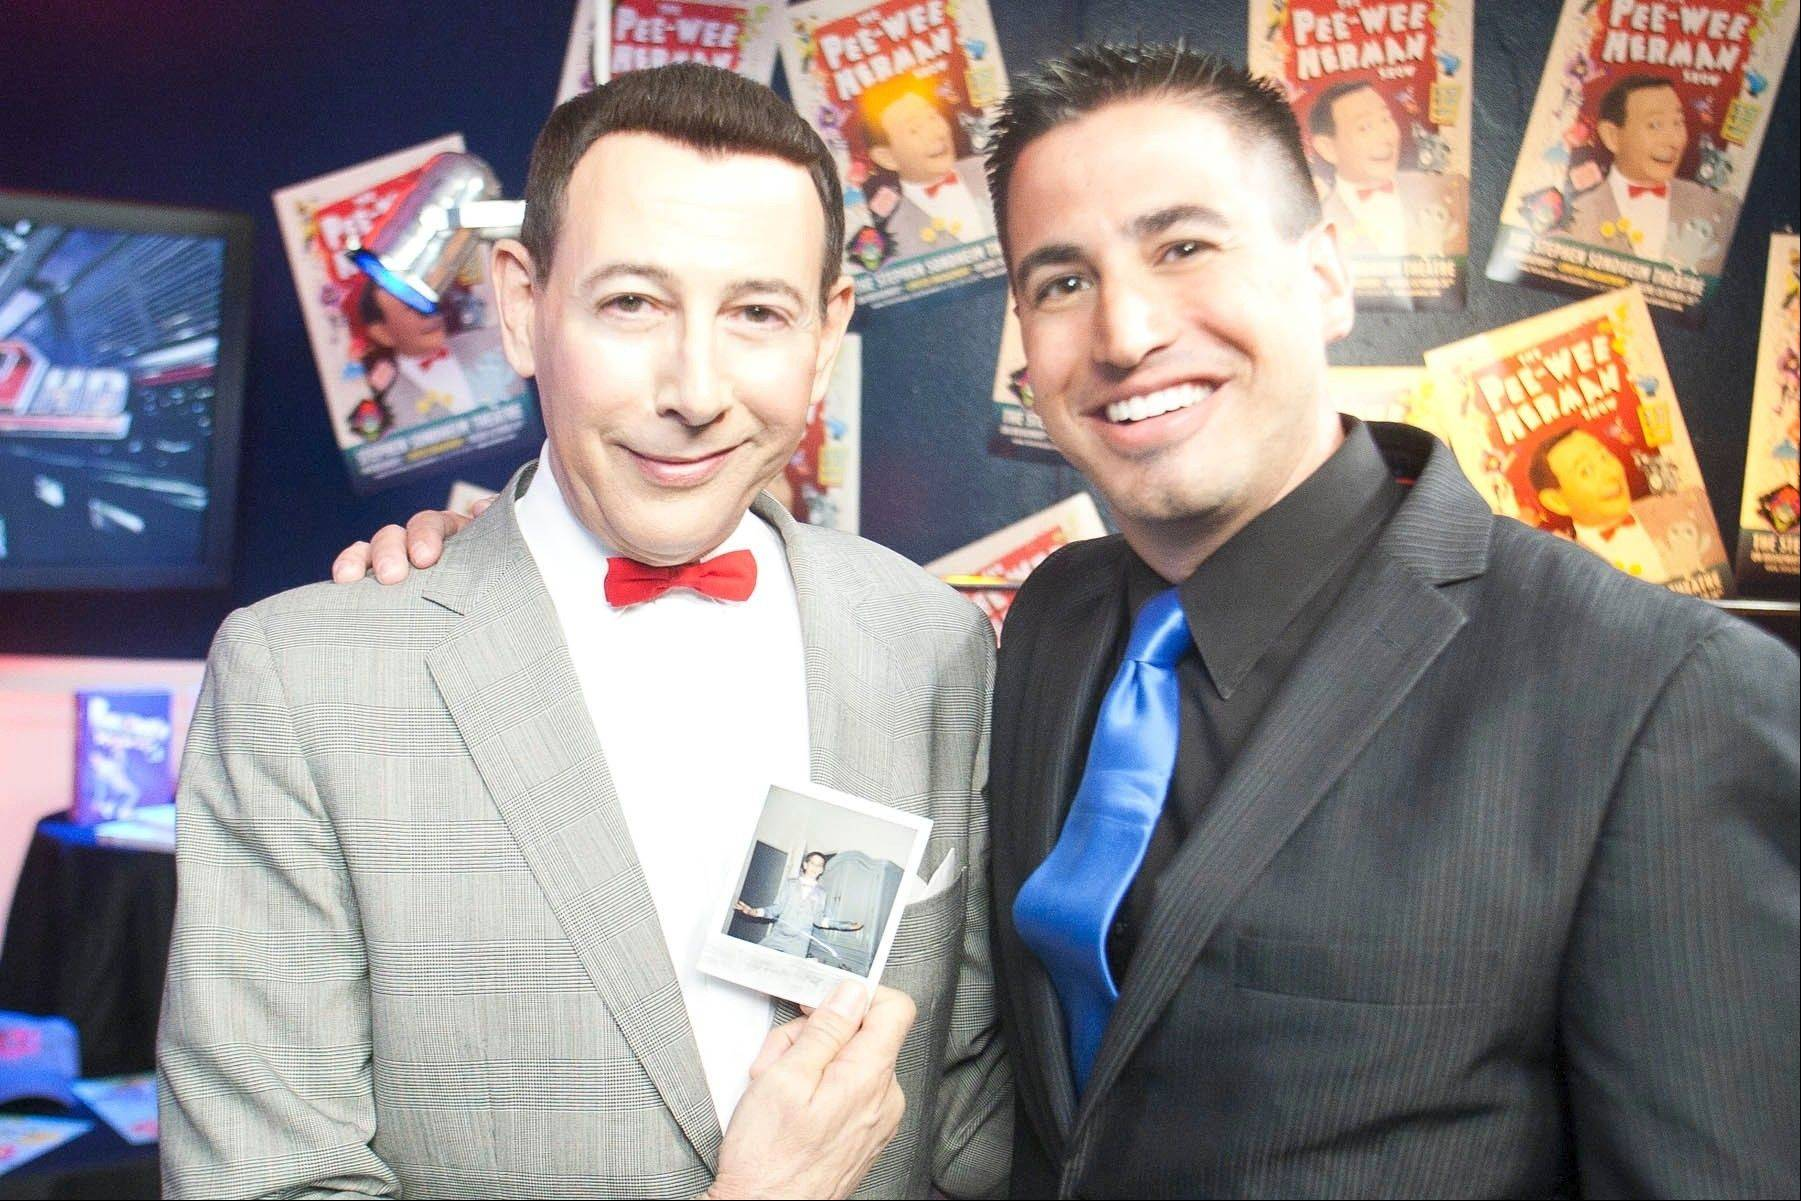 WWE announcer Justin Roberts, who grew up in Buffalo Grove, poses with Pee-wee Herman and a childhood photo of Roberts in his Pee-wee pajamas.